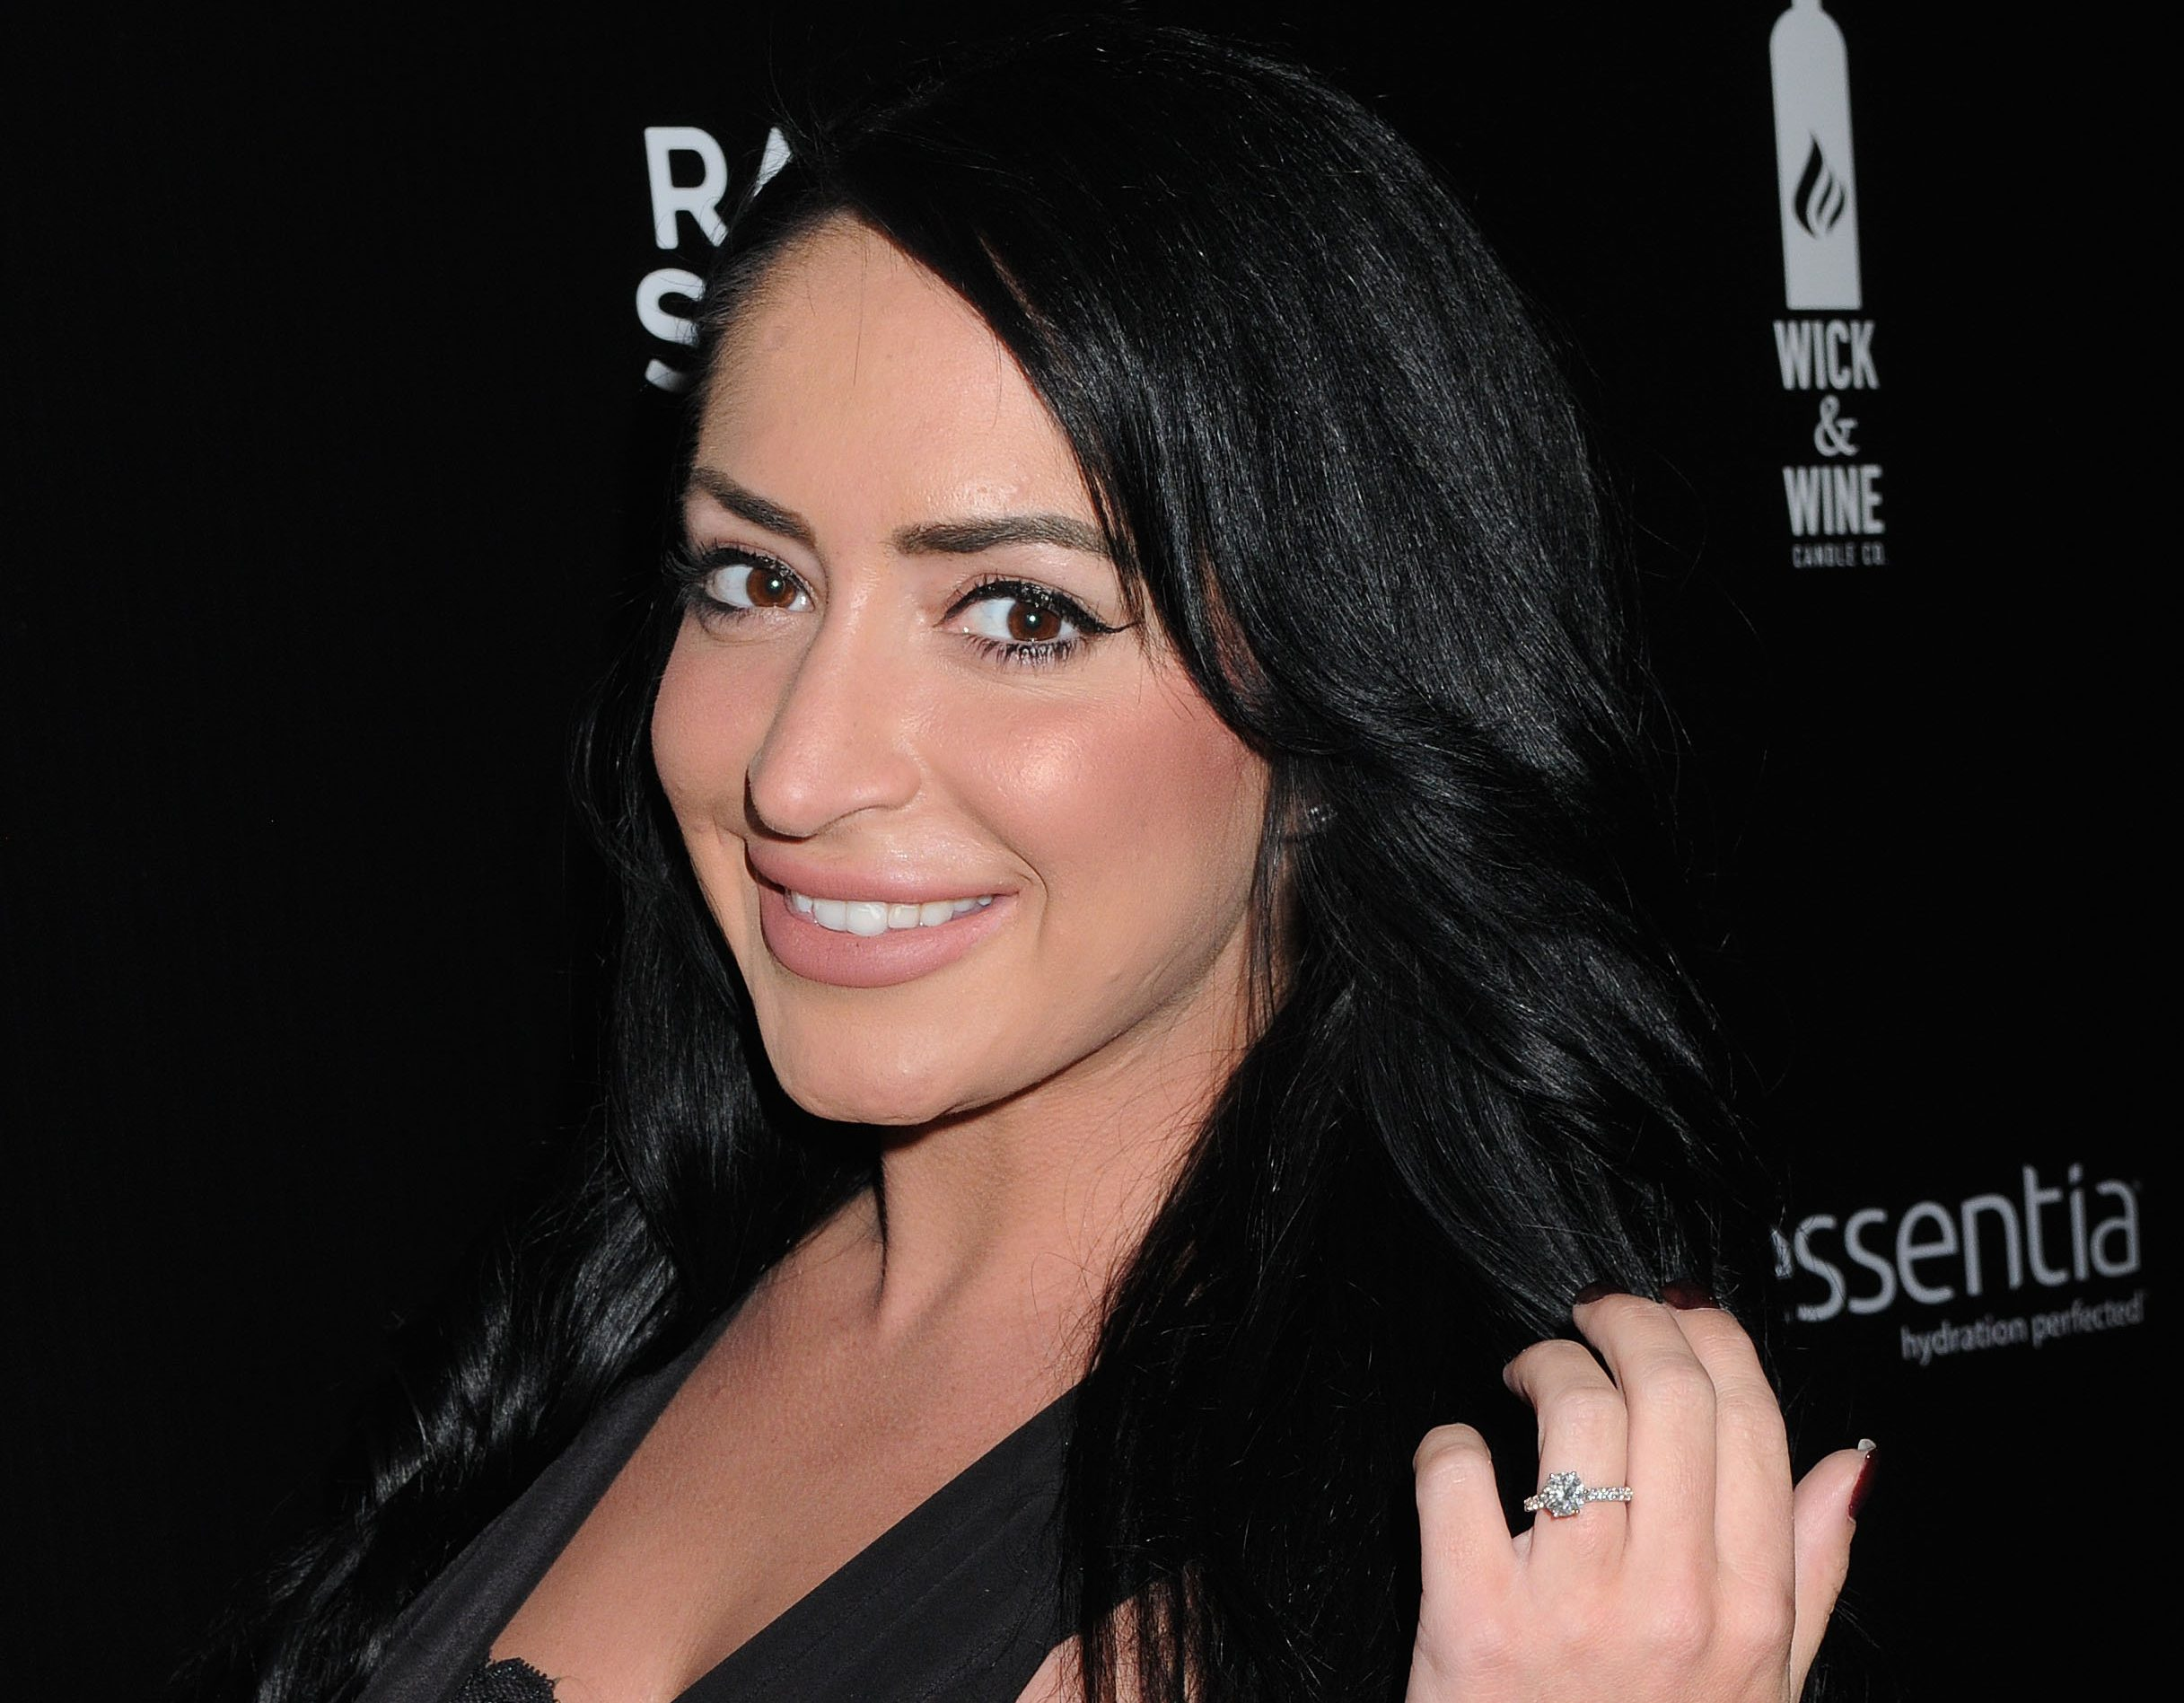 Angelina Jersey Shore Sexy angelina pivarnick of jersey shore opens up about plastic